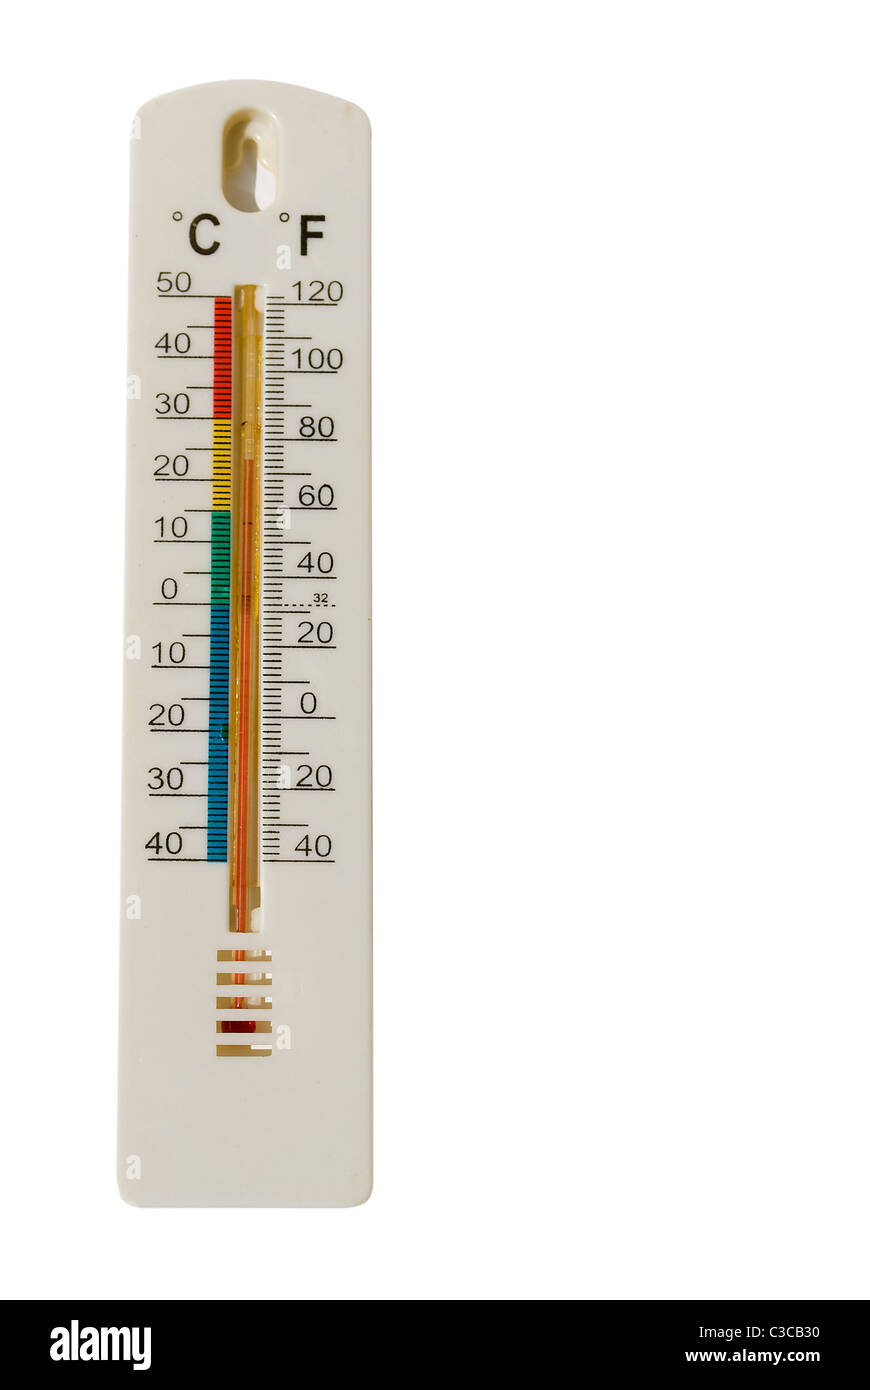 celsius and fahrenheit thermometer scale isolated on white stock